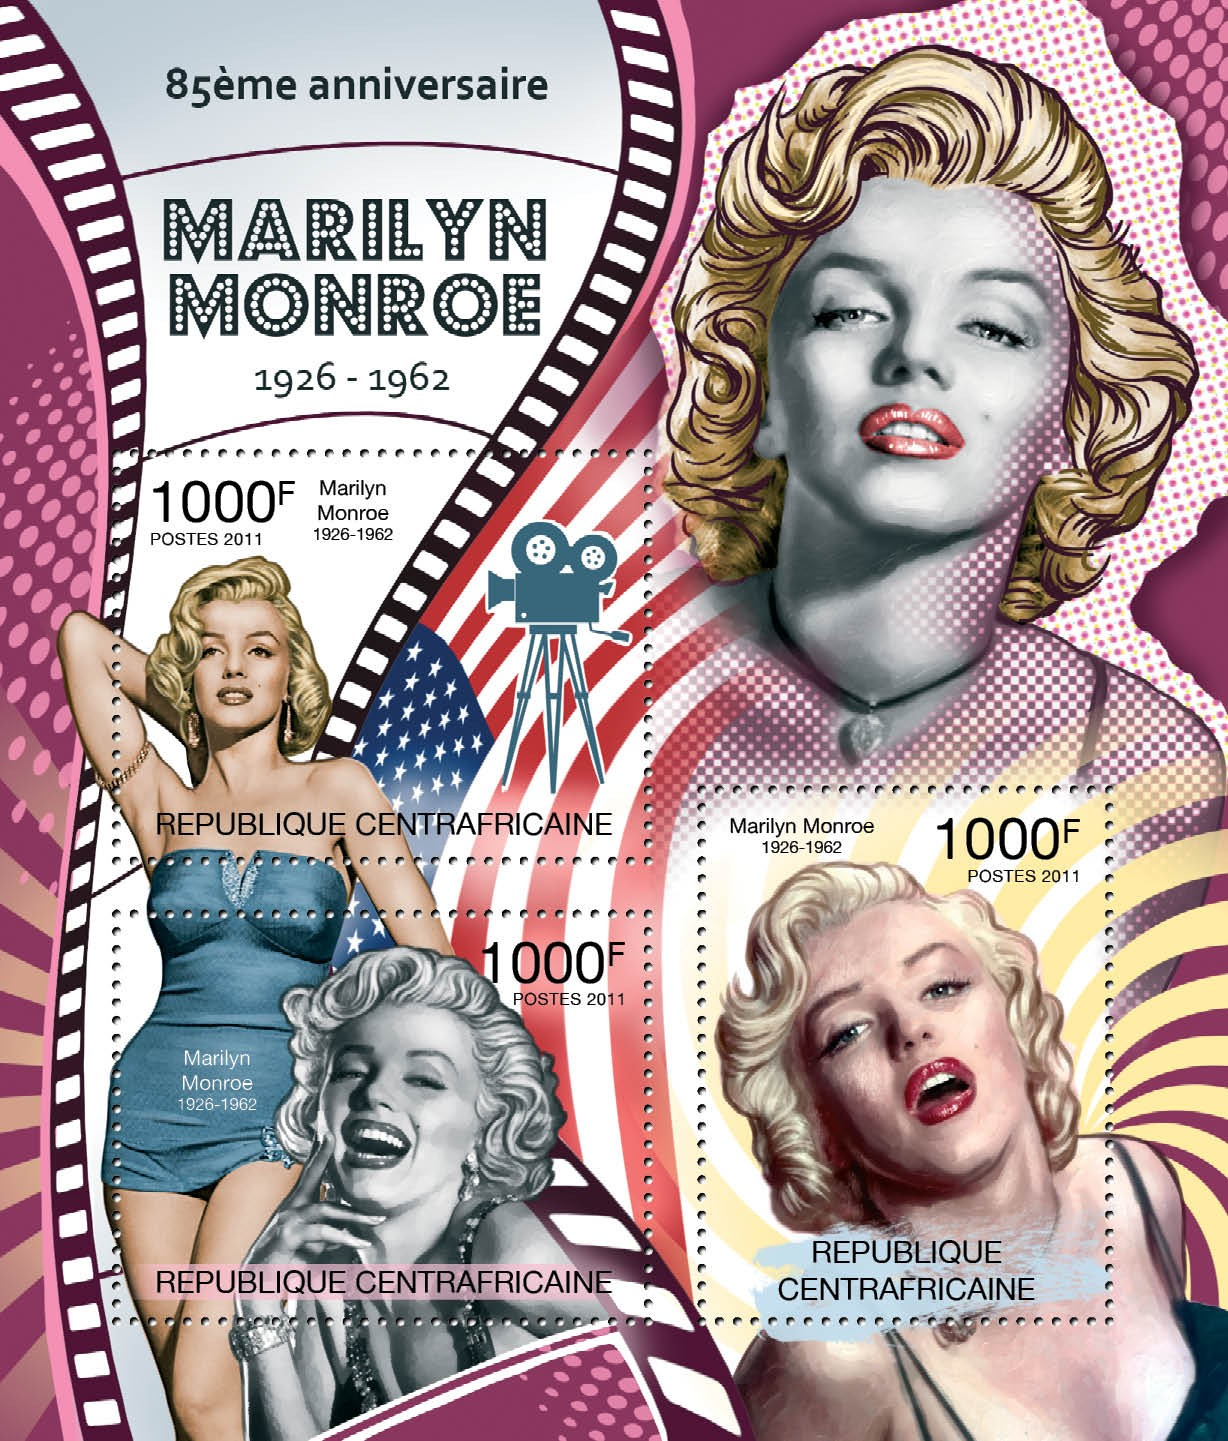 85th Anniversary of Marilyn Monroe, (1926-1962). - Issue of Central African republic postage stamps